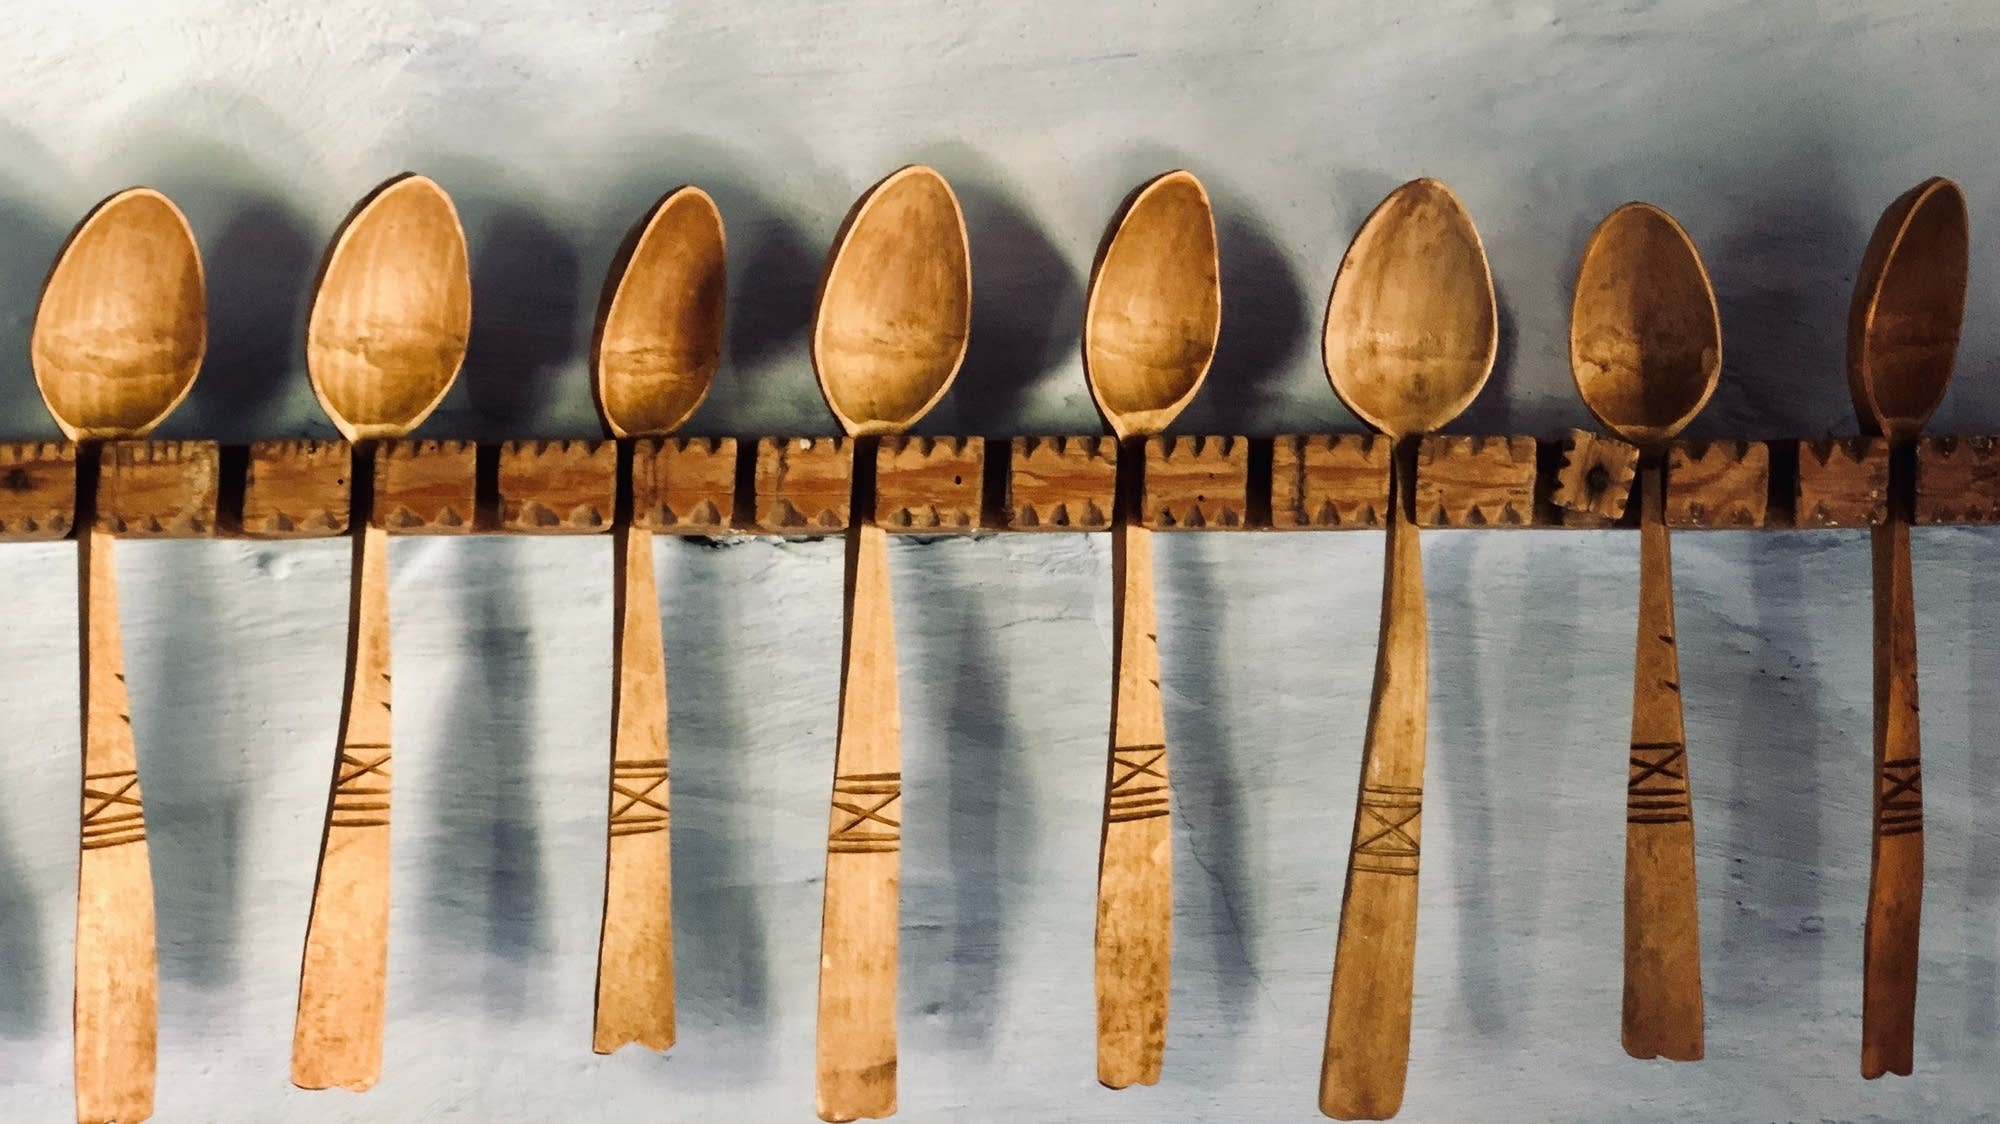 Wooden spoons hanging in a row